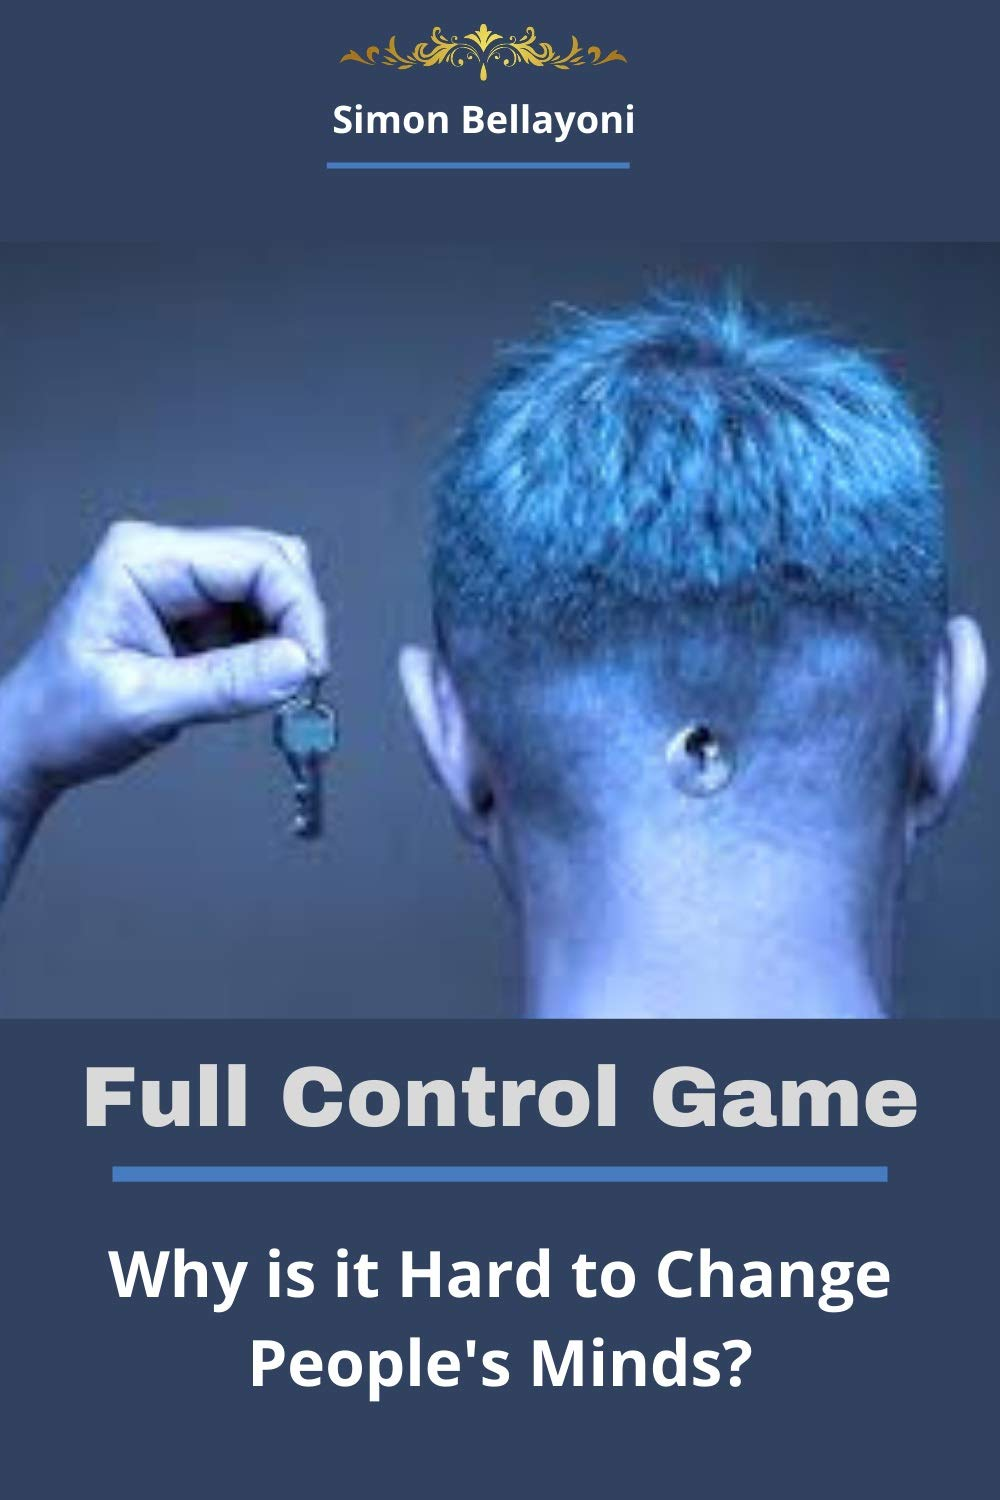 Full Control Game: Why is it Hard to Change People's Minds?